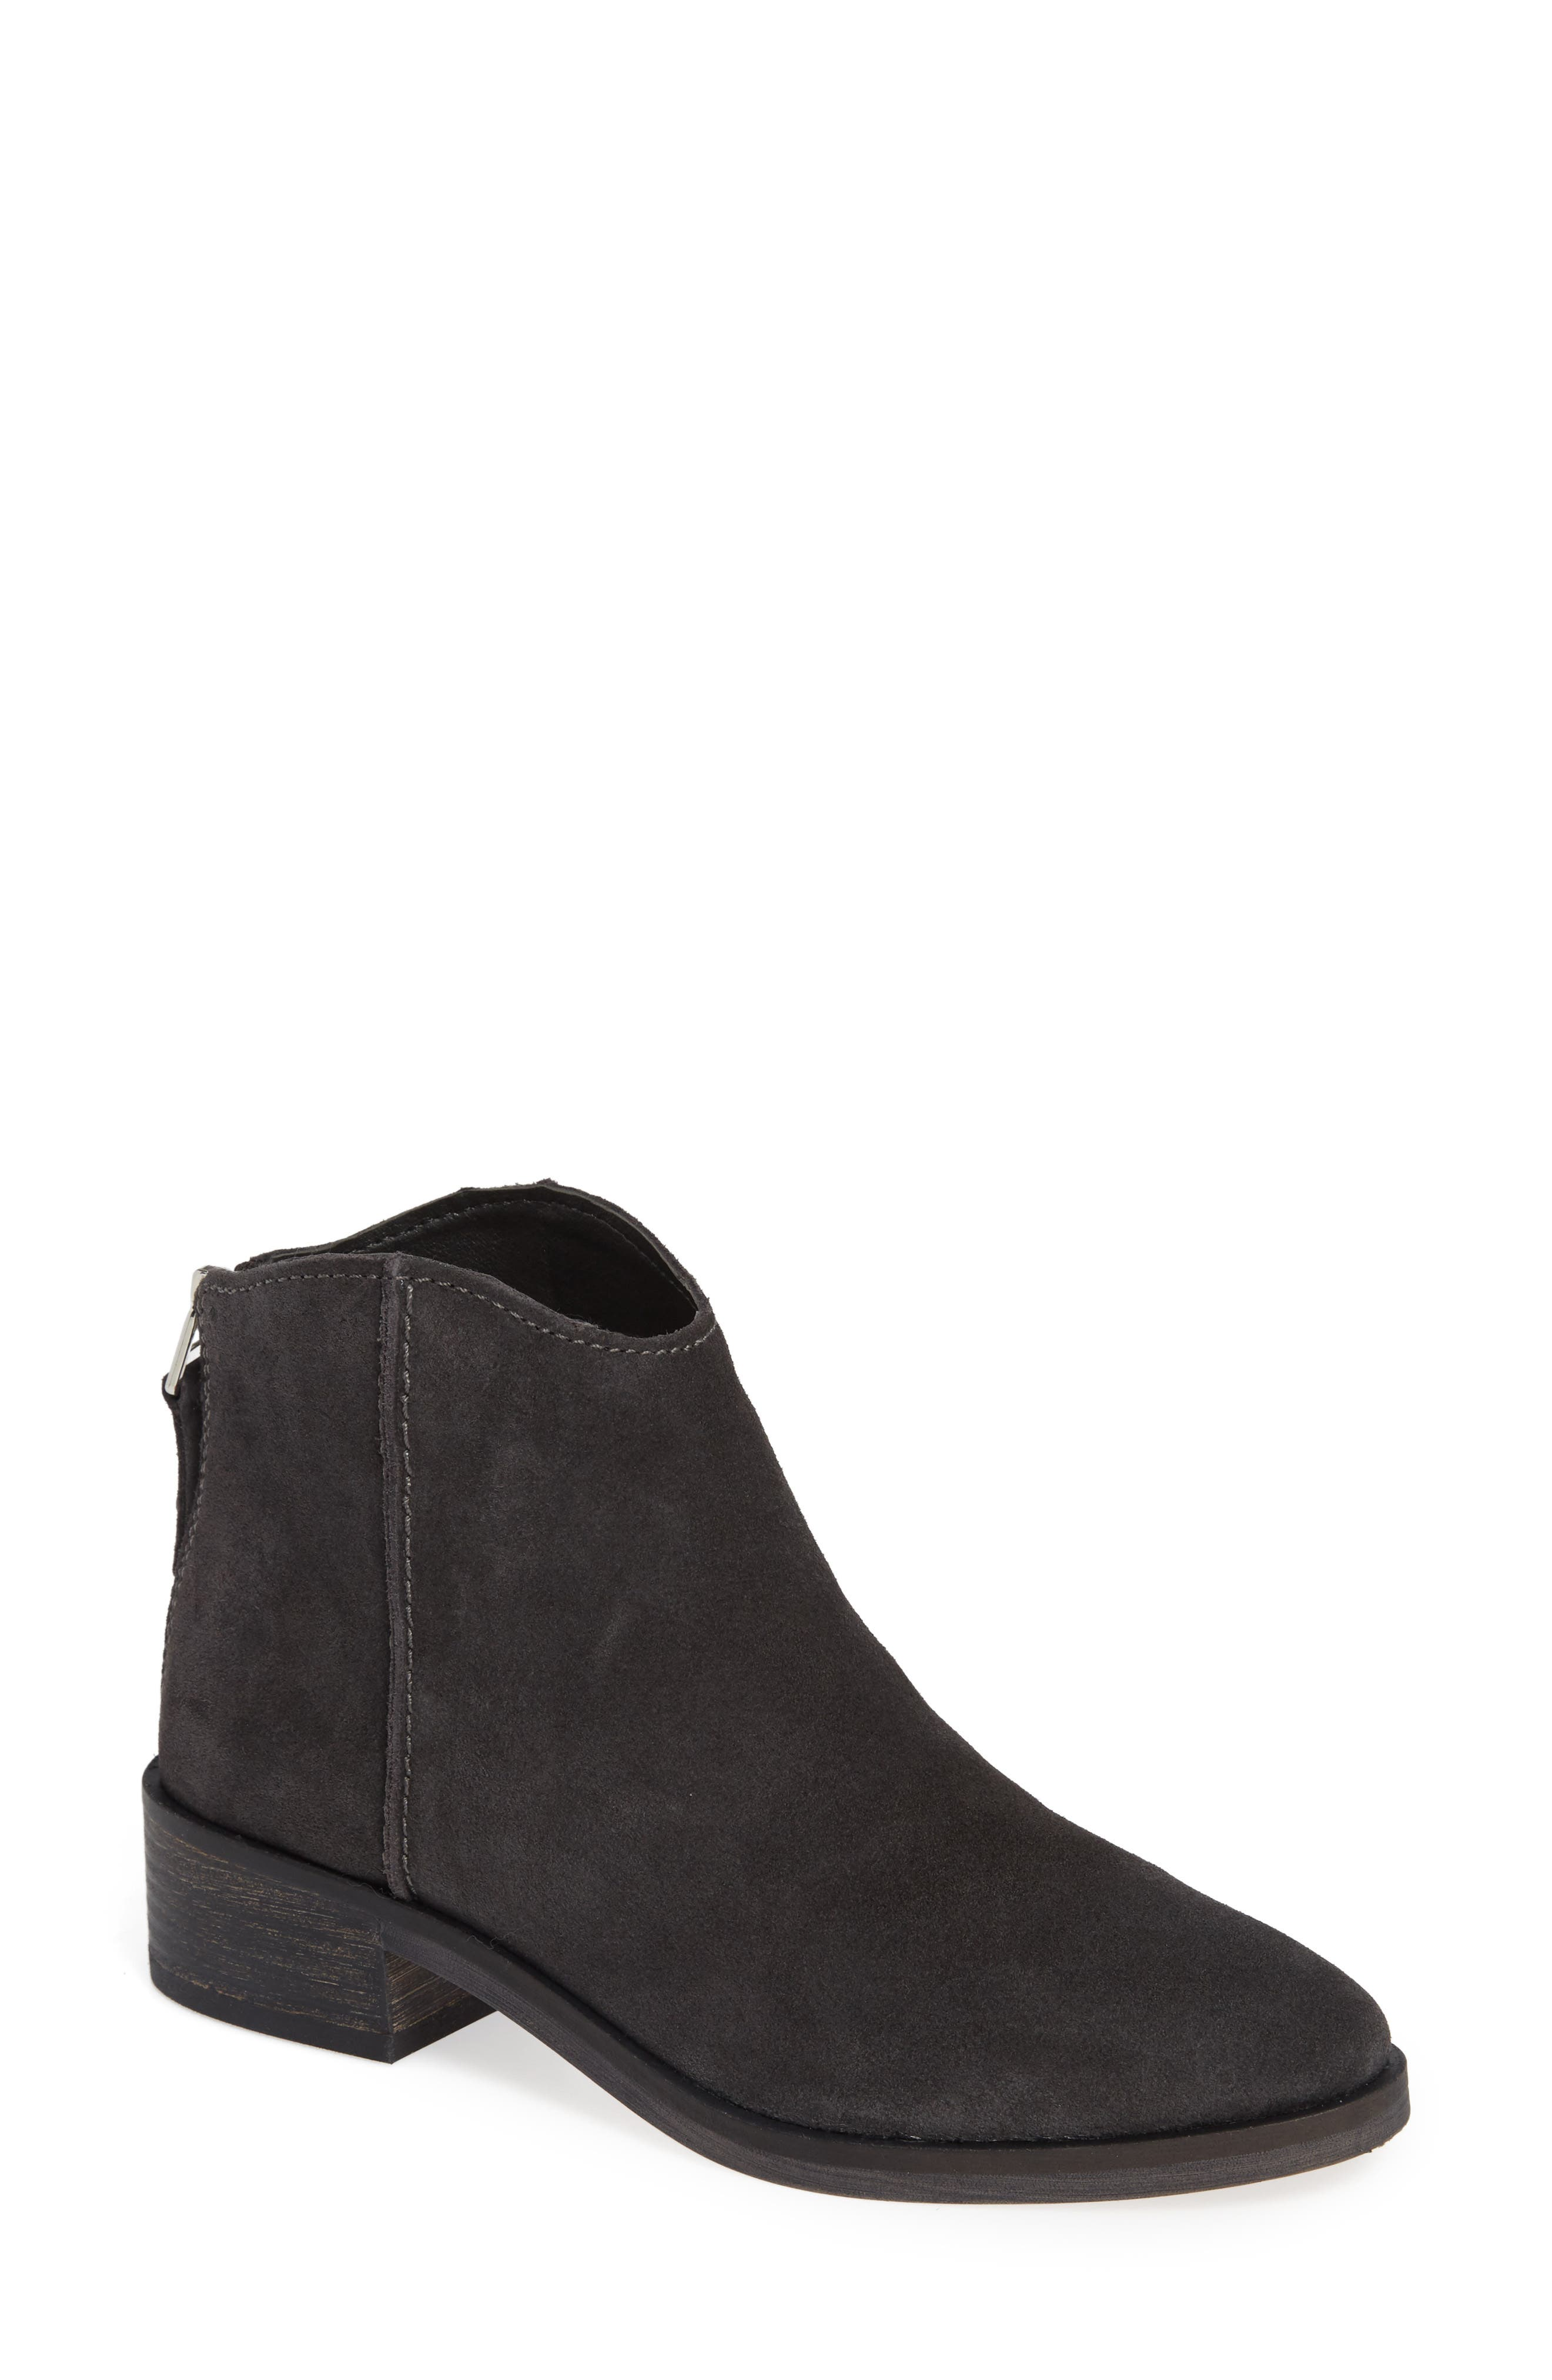 Tucker Bootie,                             Main thumbnail 1, color,                             ANTHRACITE SUEDE